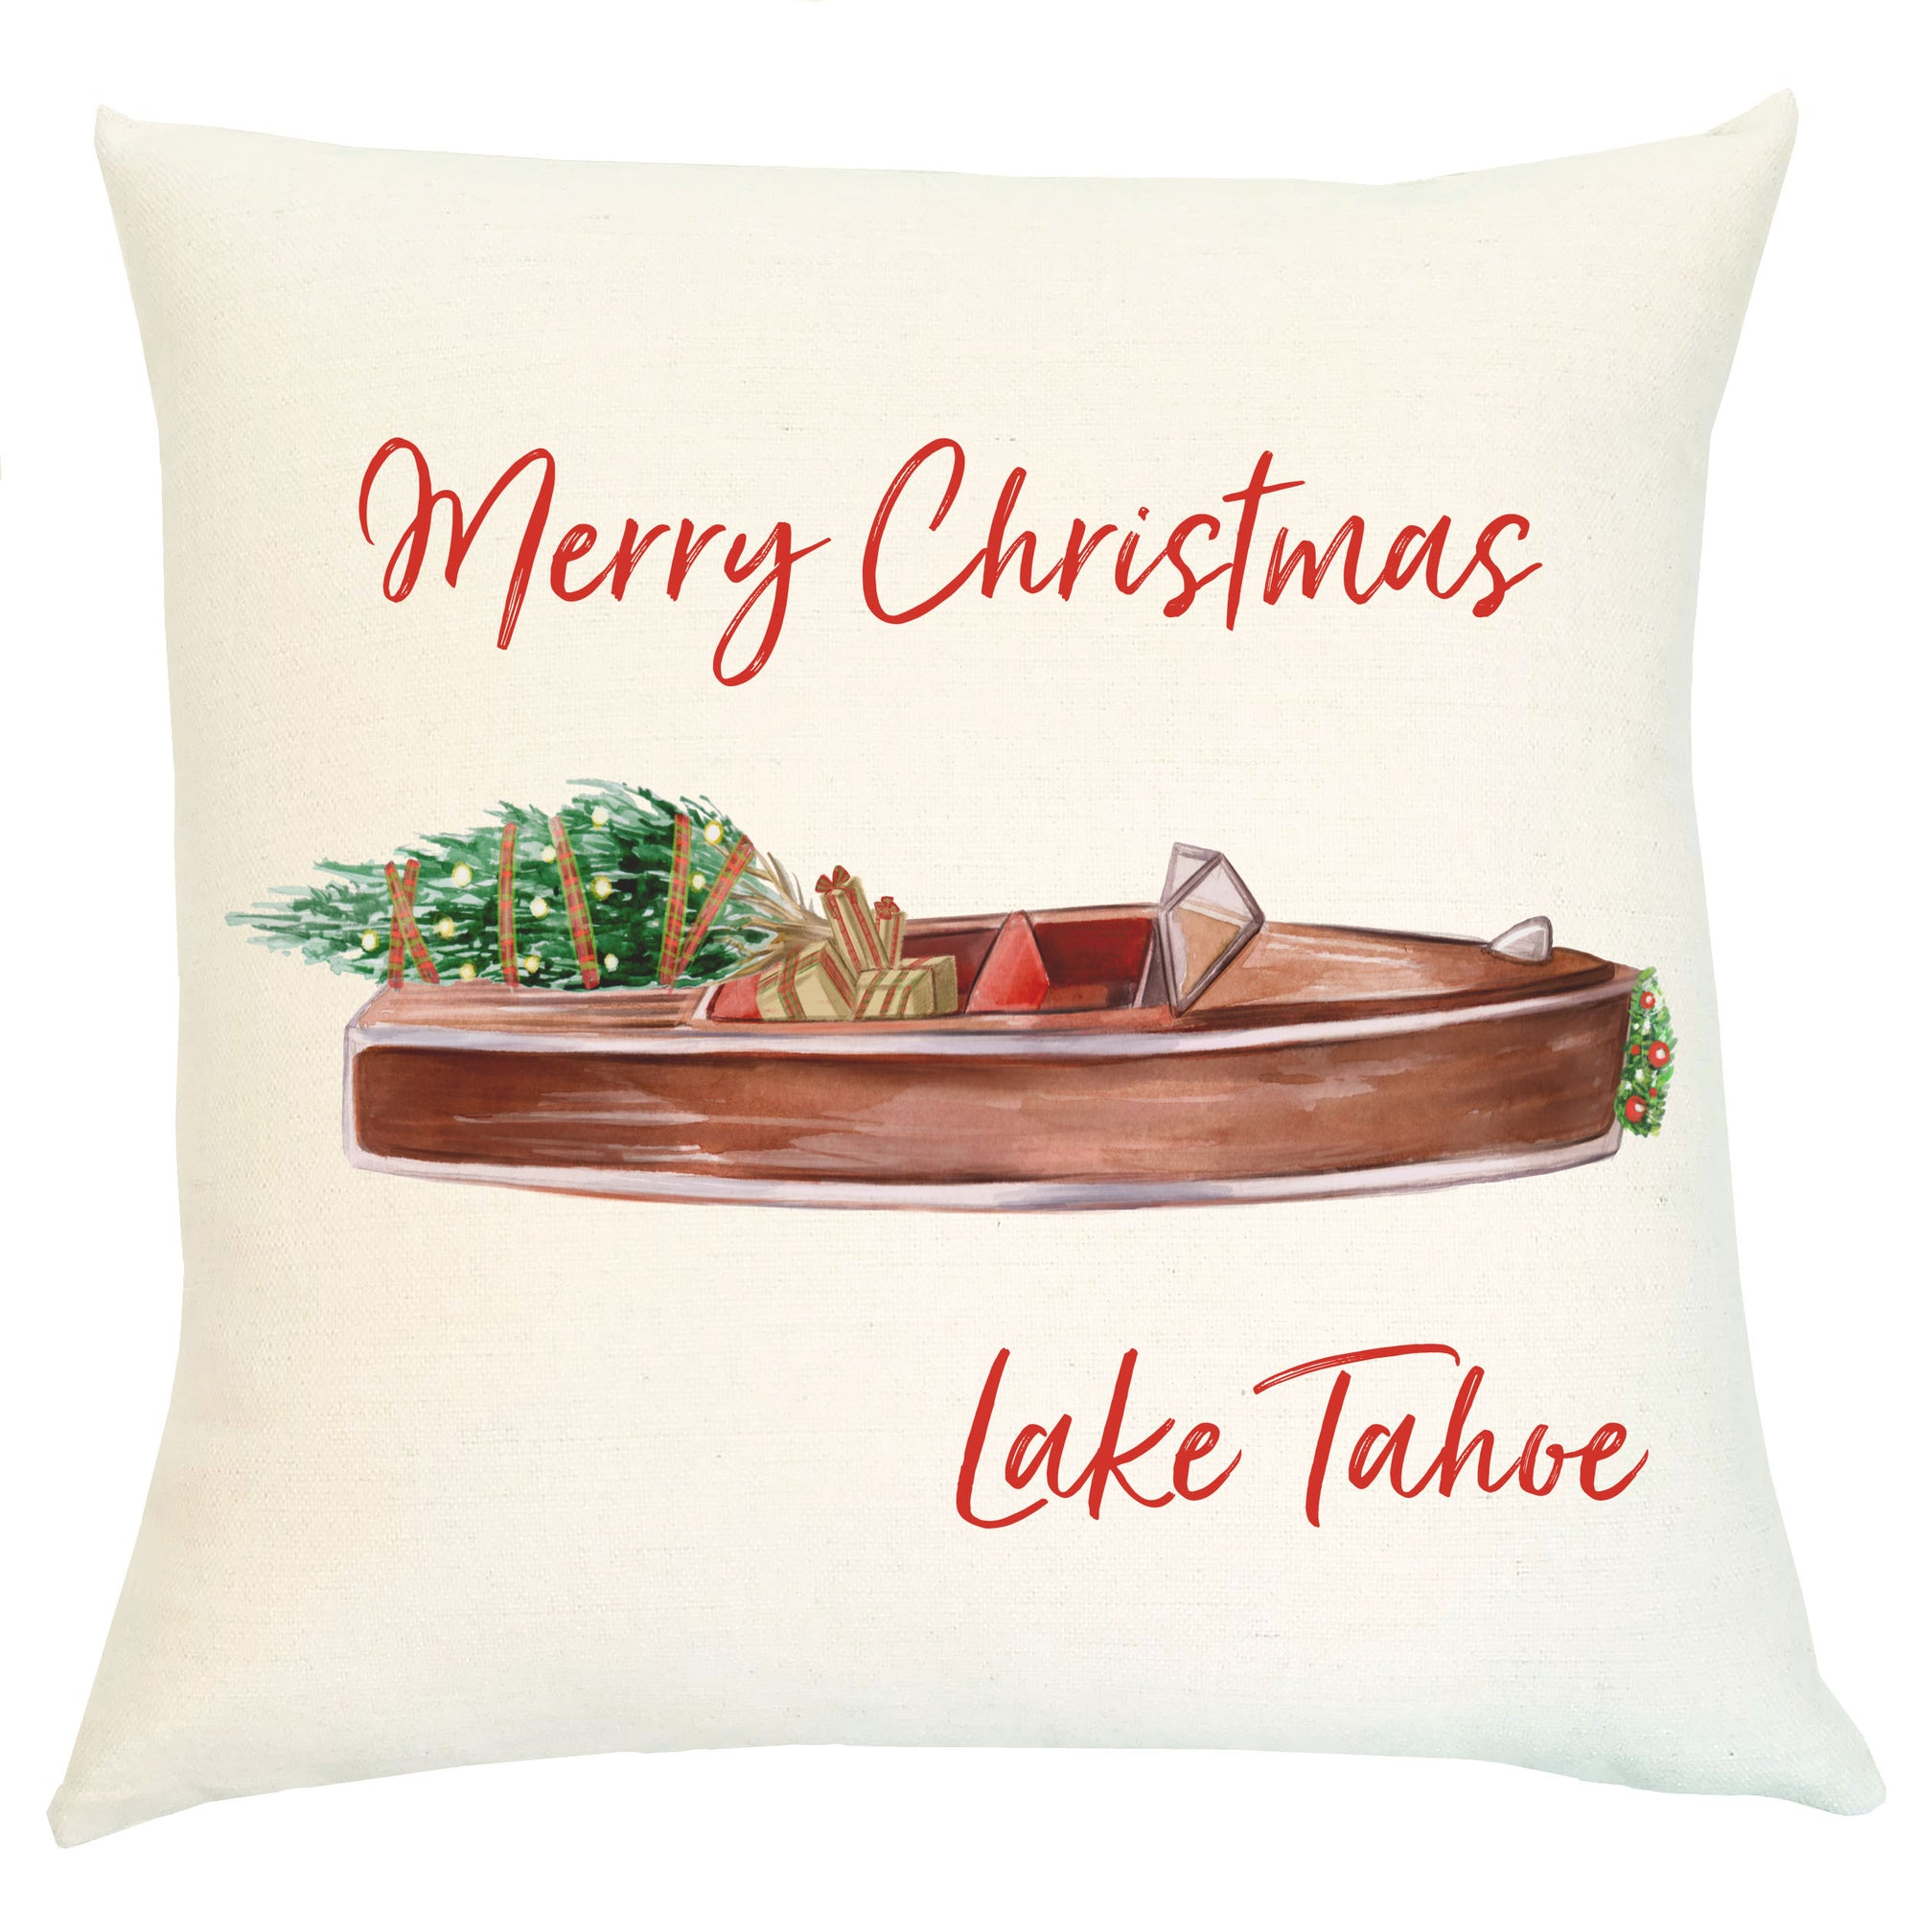 Pillow Personalized - Vintage Woody Boat Merry Christmas